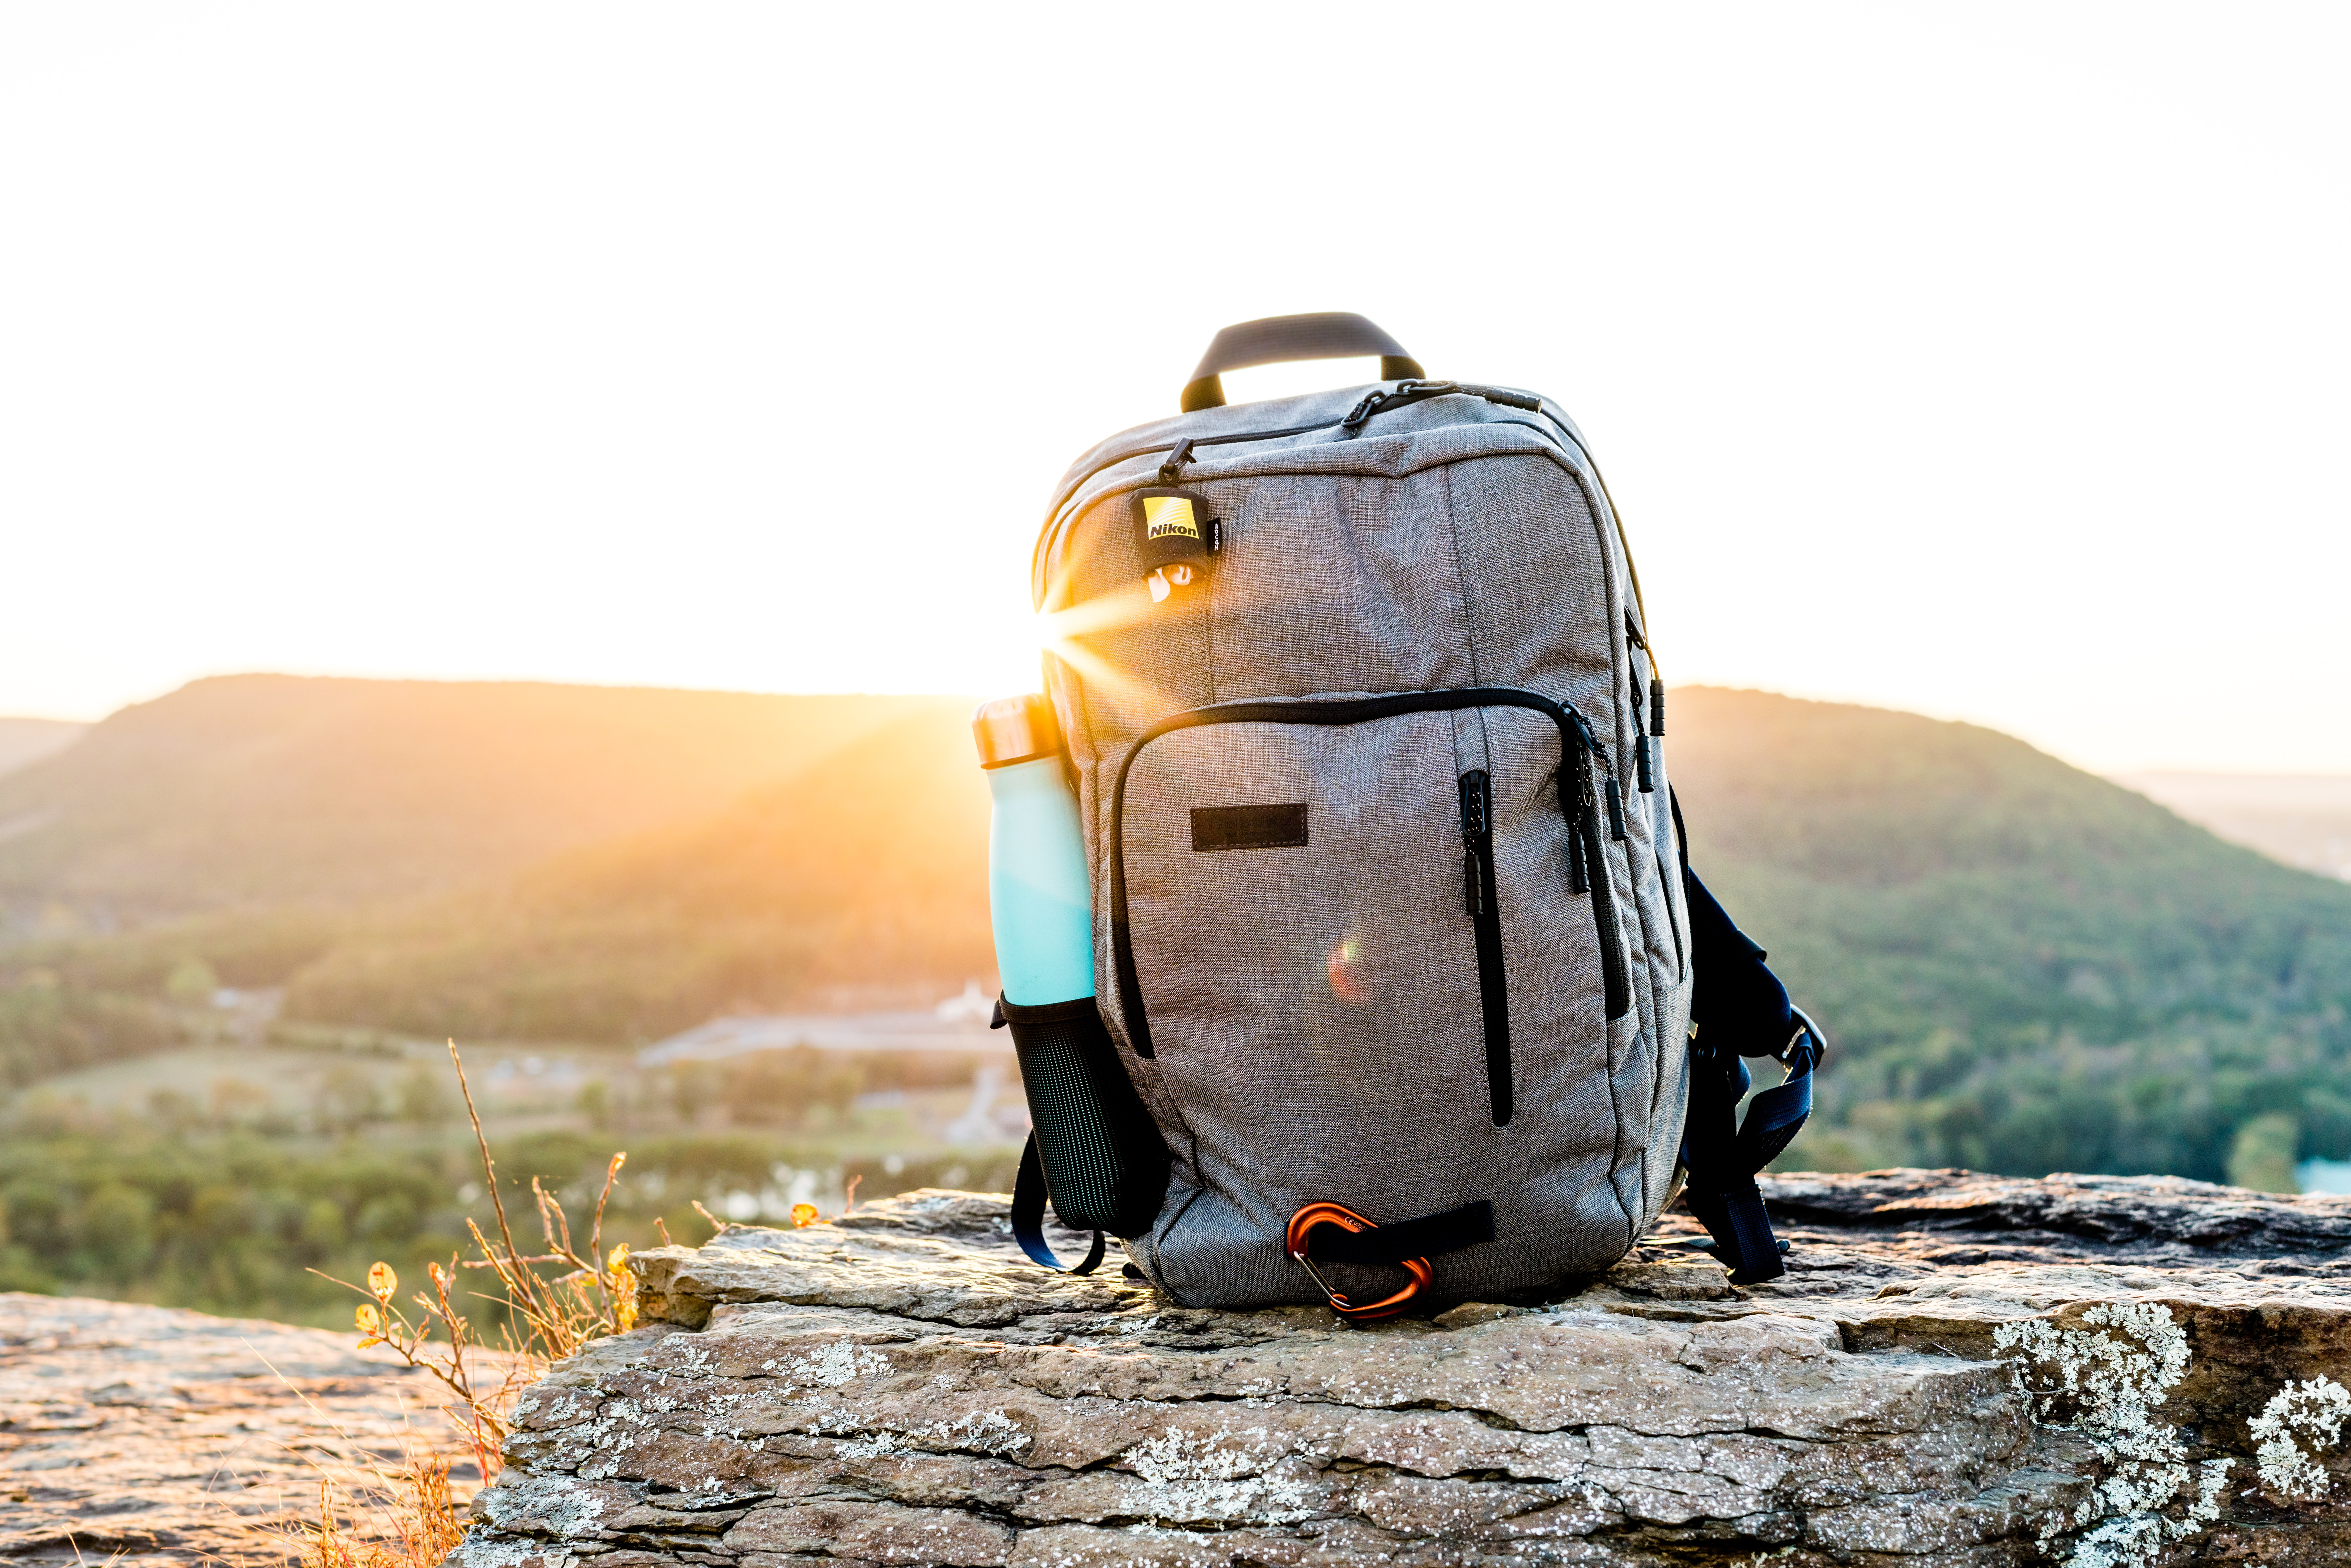 Prepare for natural disasters by having a bug out bag for evacuations